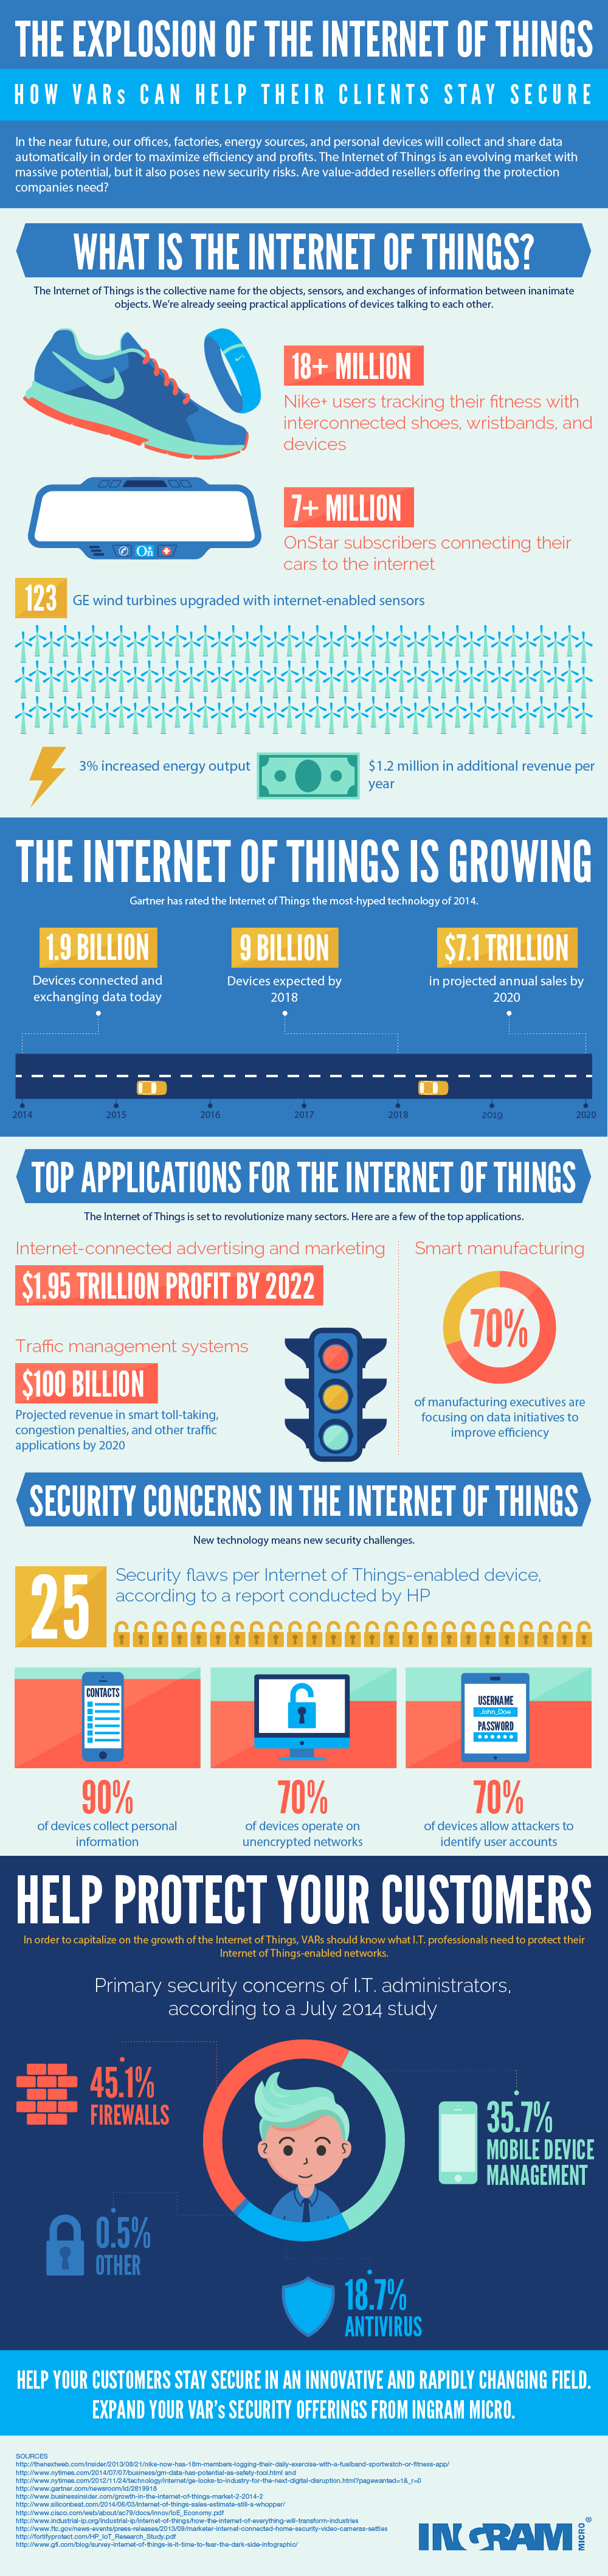 The_Explosion_of_the_Internet_of_Things